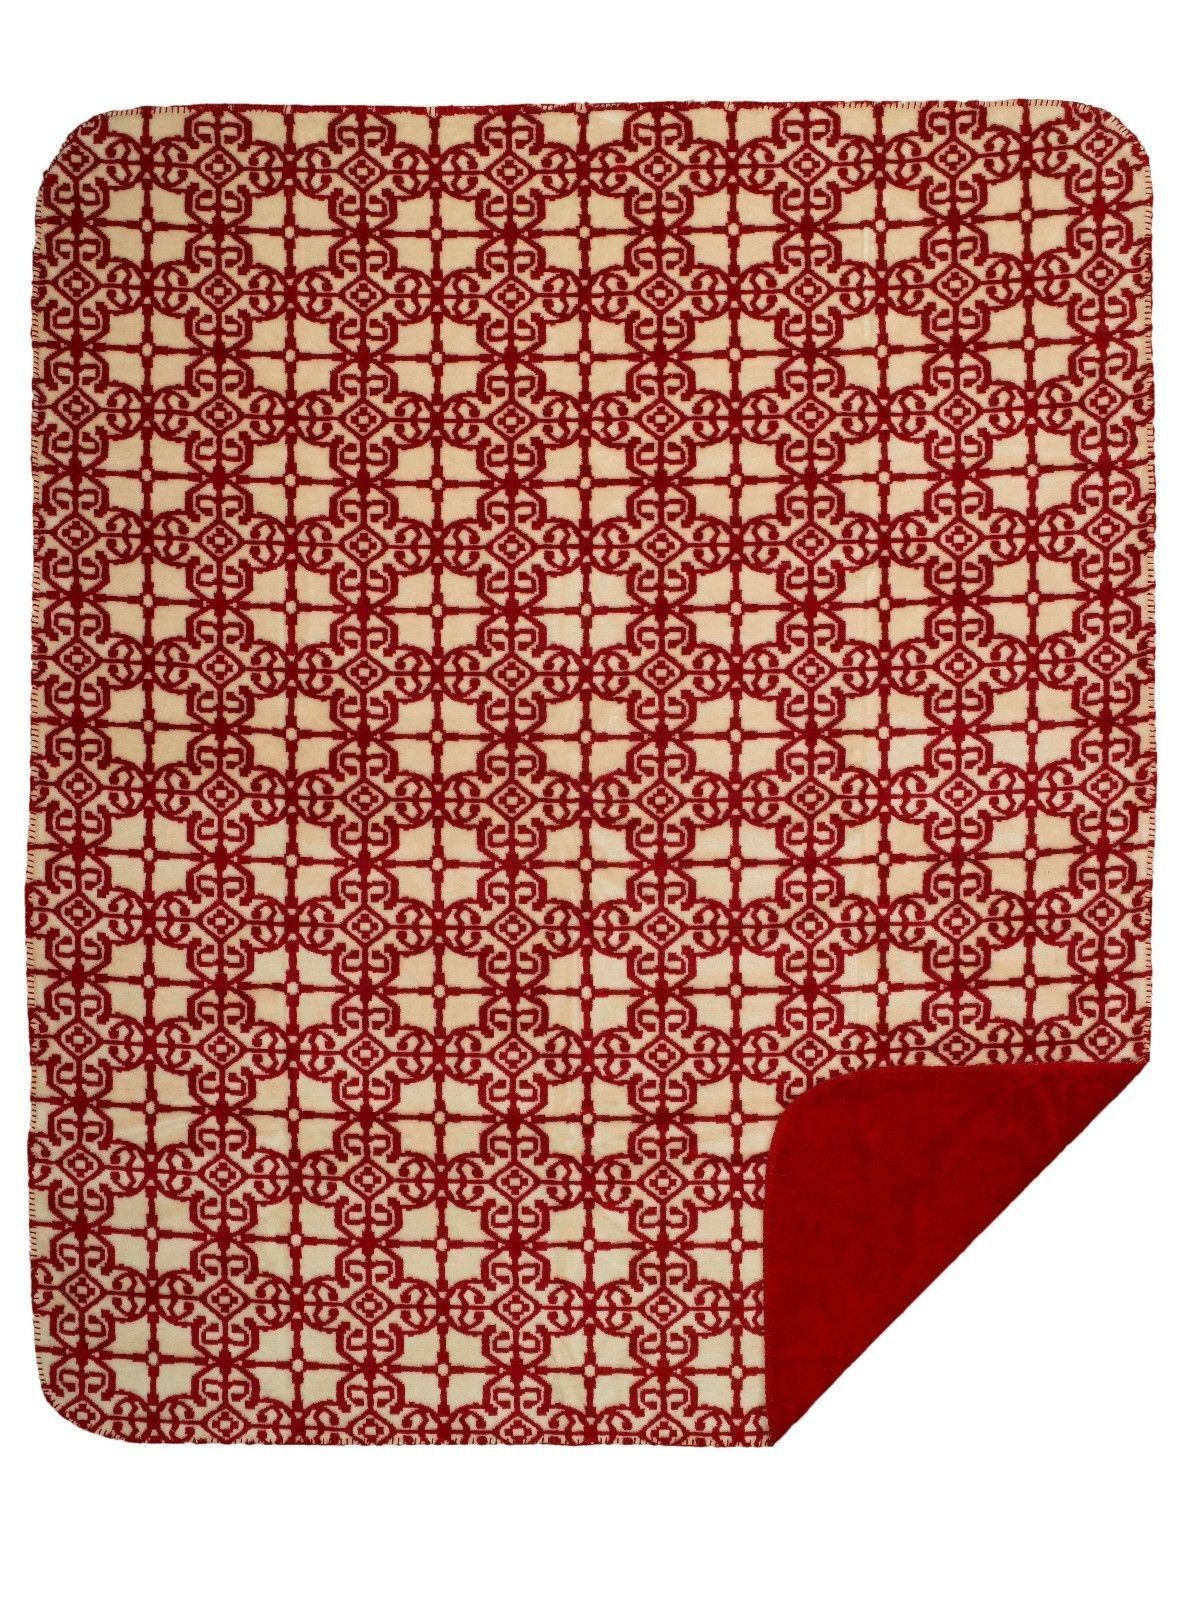 Moroccan inspired microplush hitech knitted fabric reversible